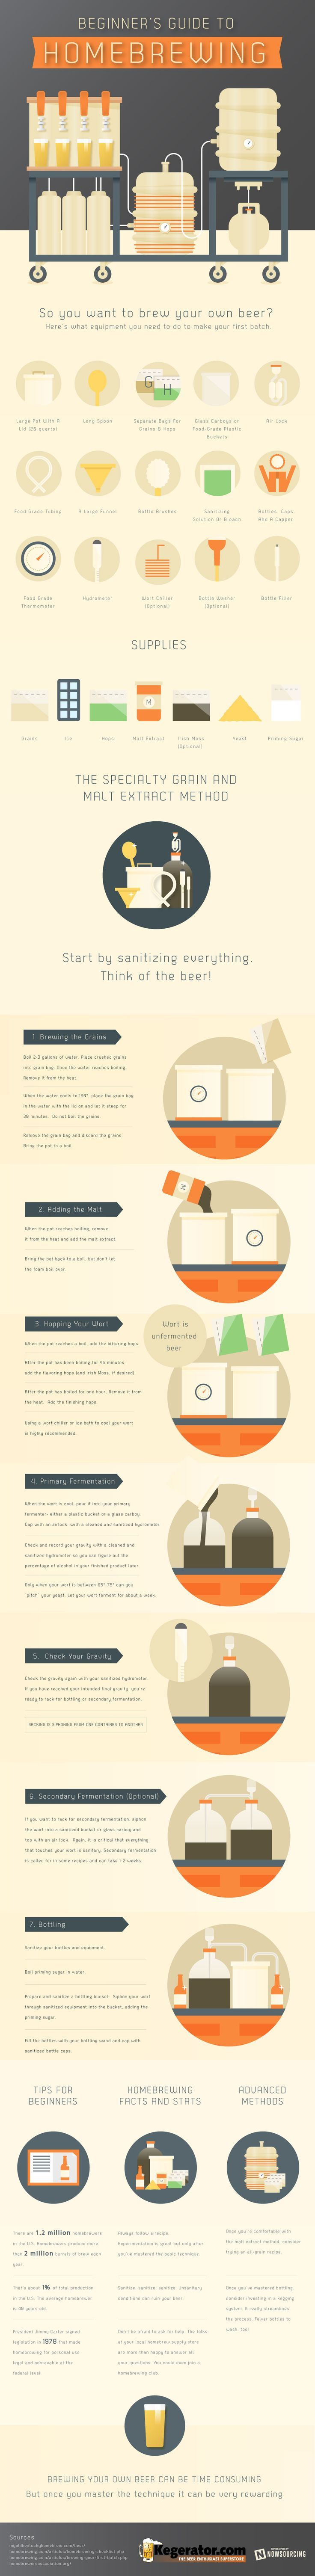 171 best images about beer infographics on pinterest for How to brew your own craft beer